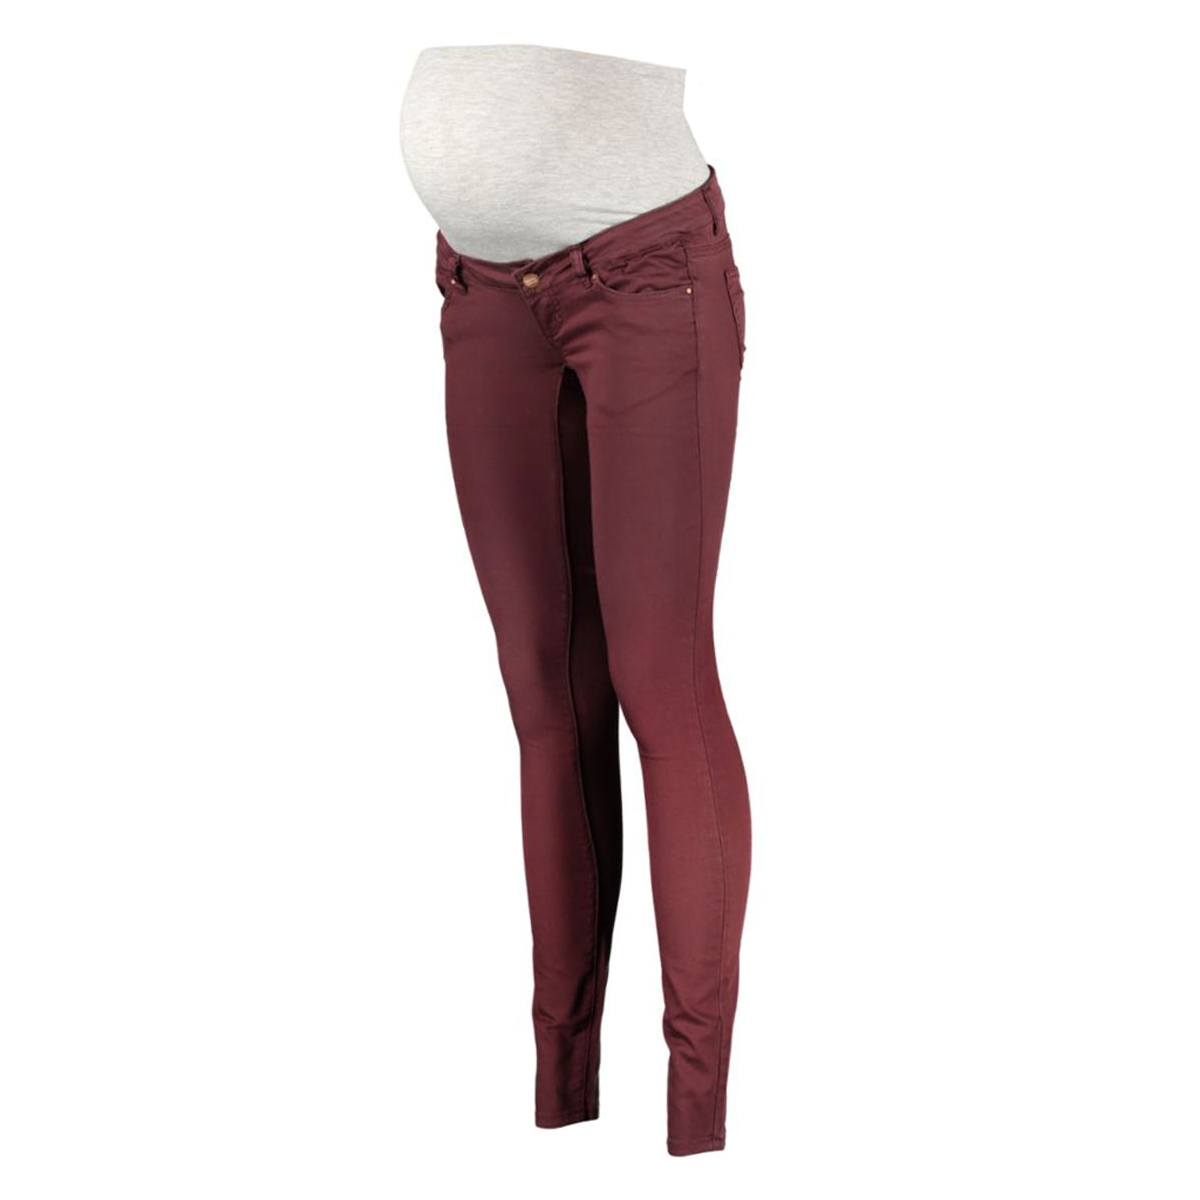 mlida skinny color jeans 20003563 mama-licious positie broek decadent chocolate